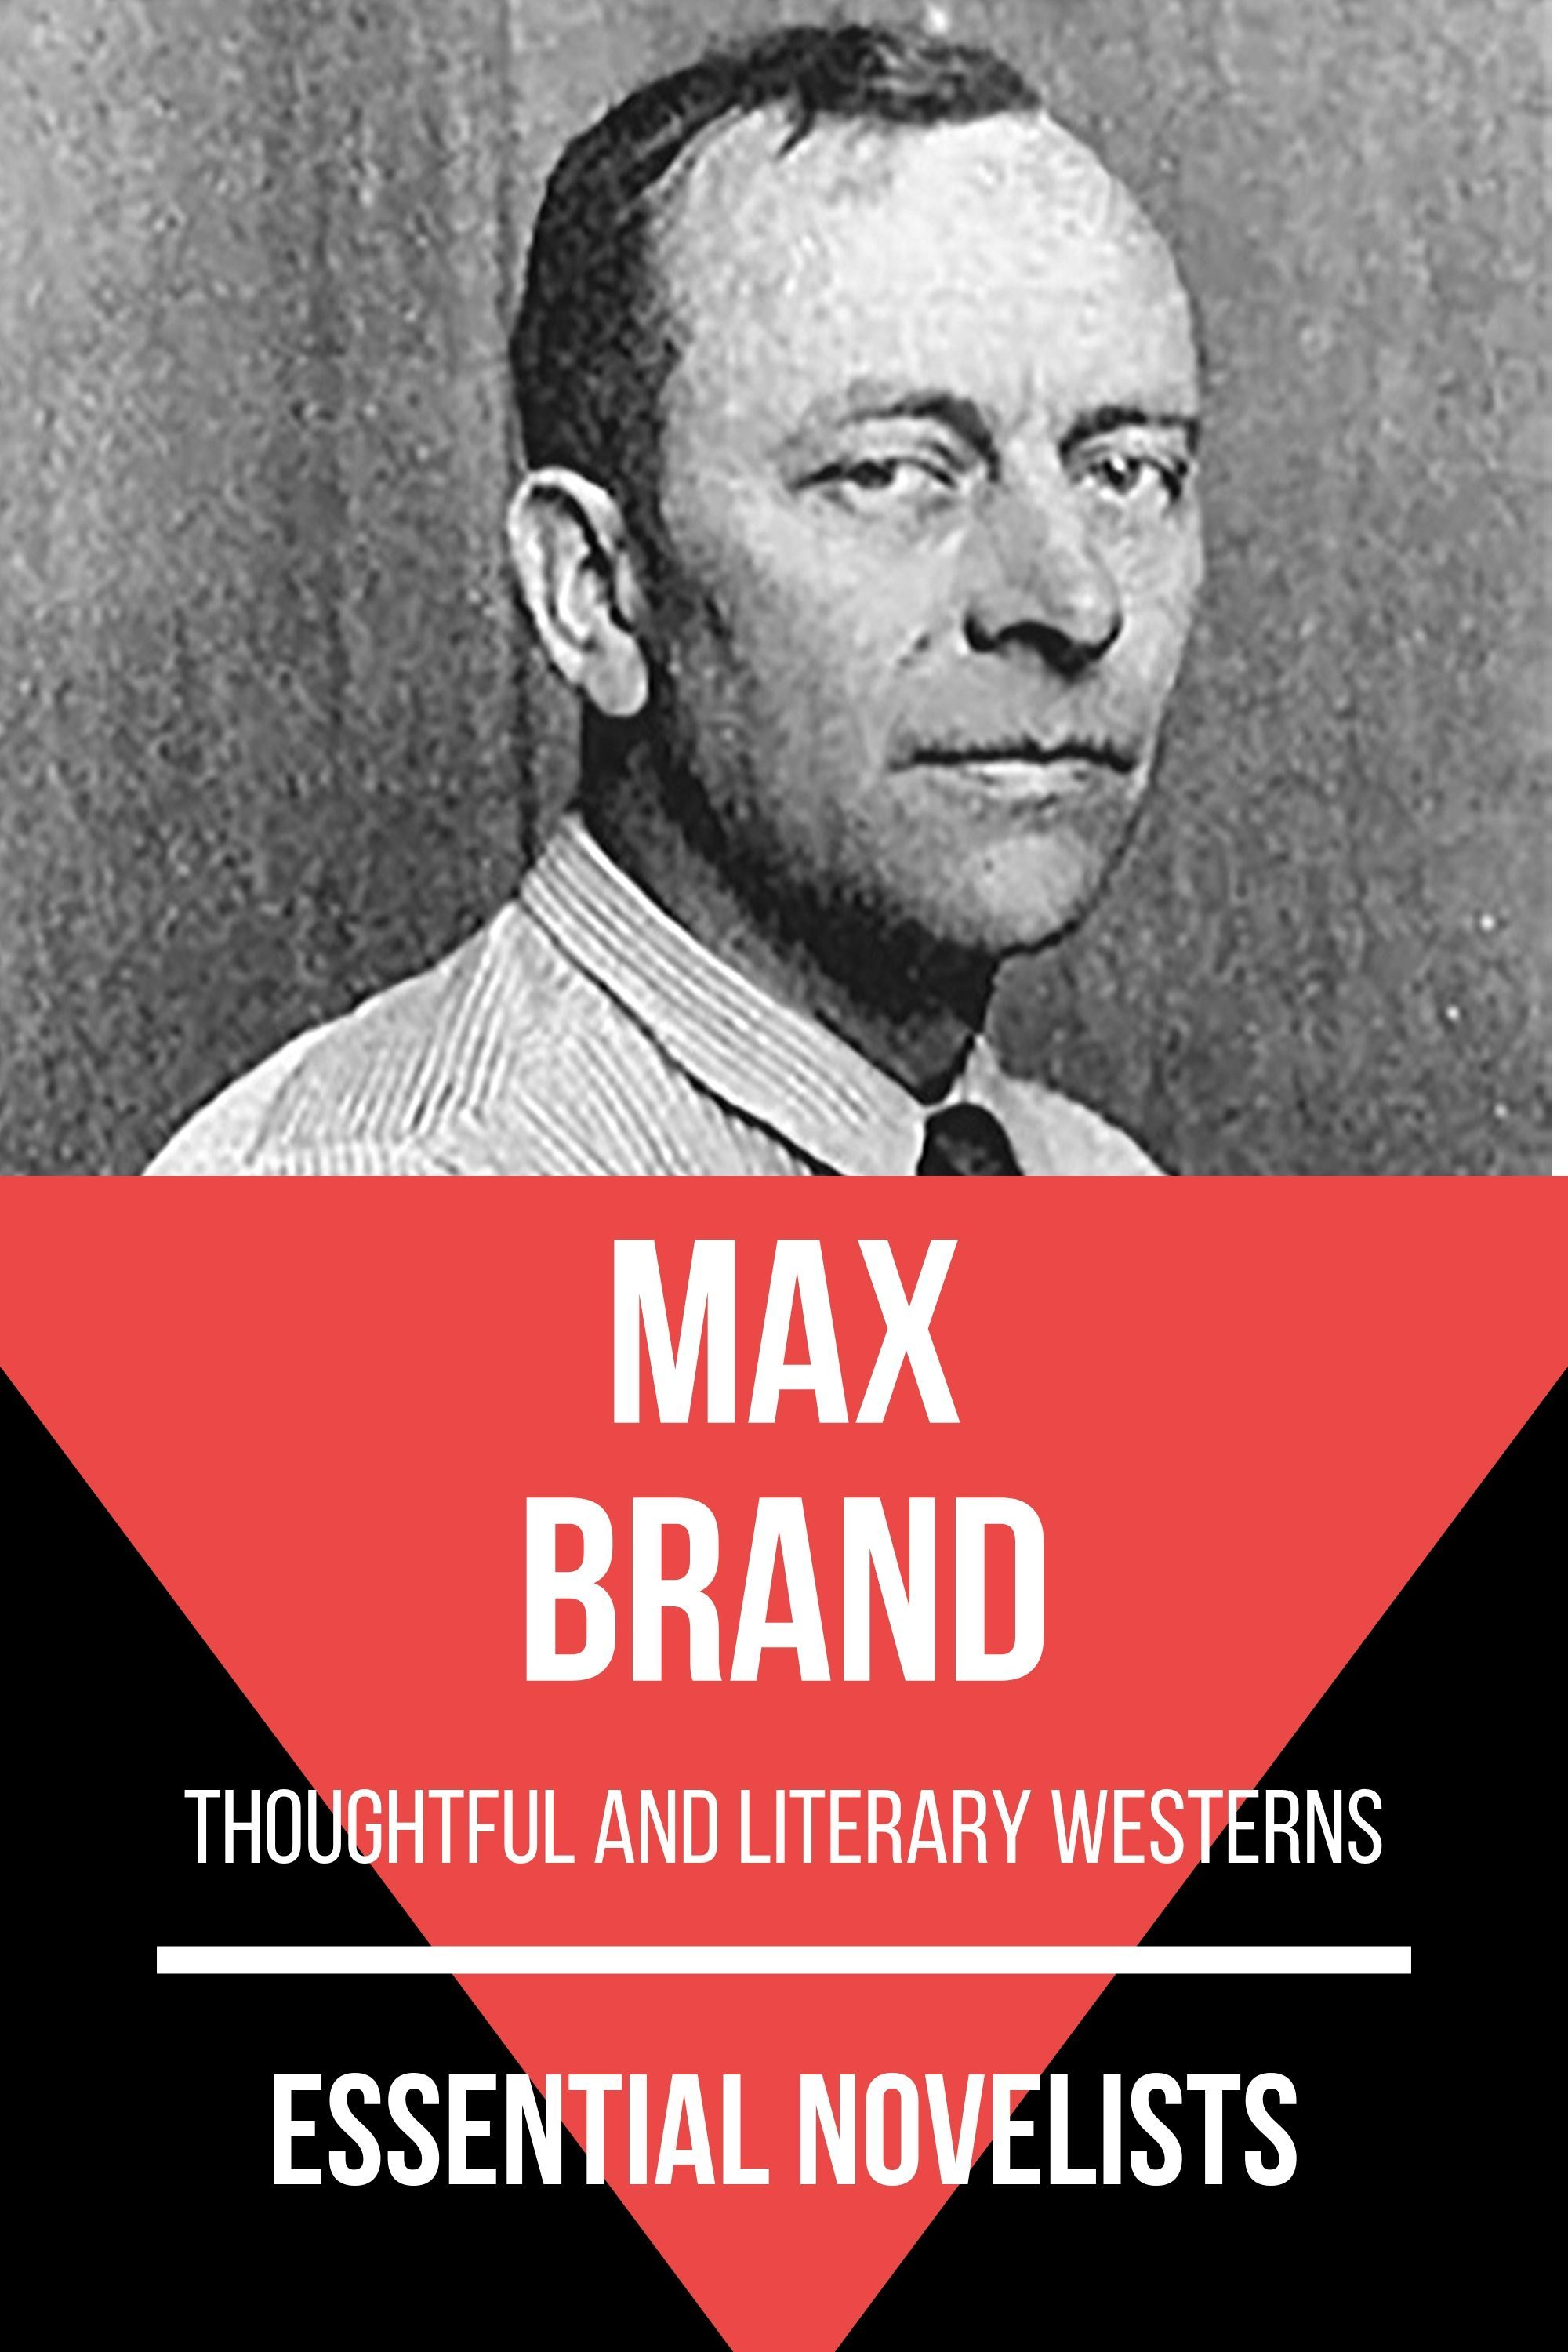 Essential Novelists - Max Brand